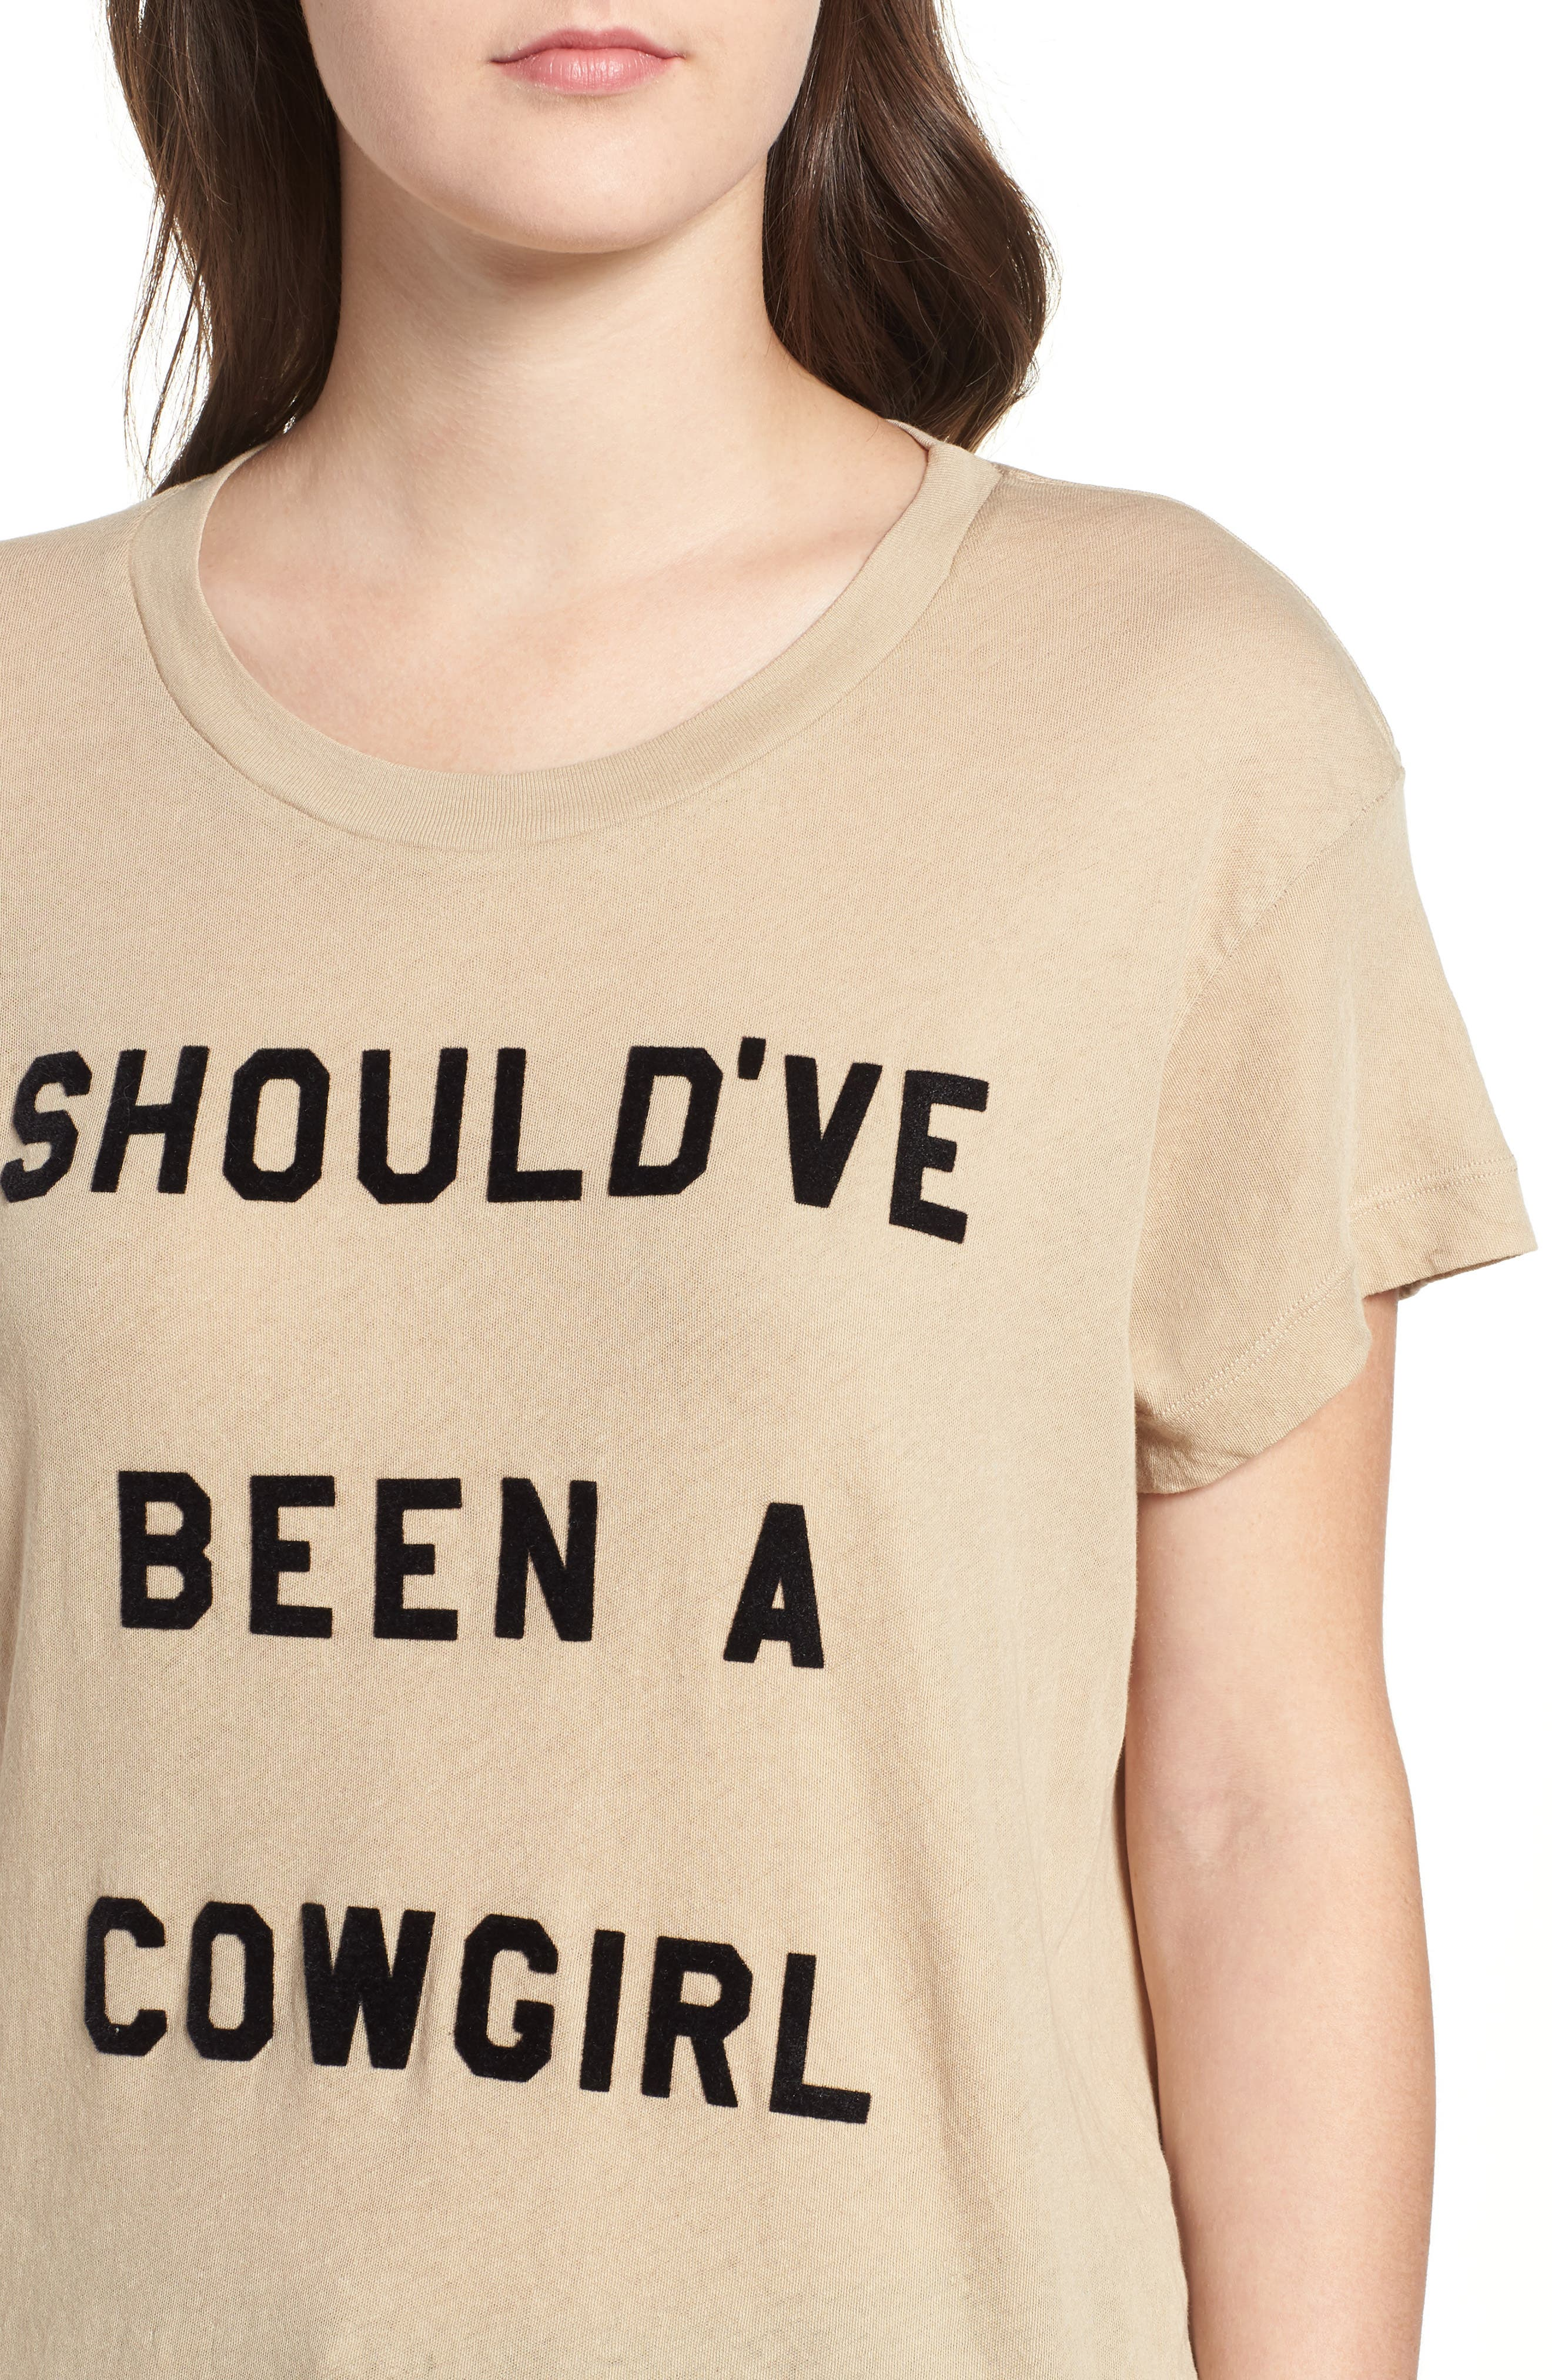 Cowgirl Tee,                             Alternate thumbnail 4, color,                             250